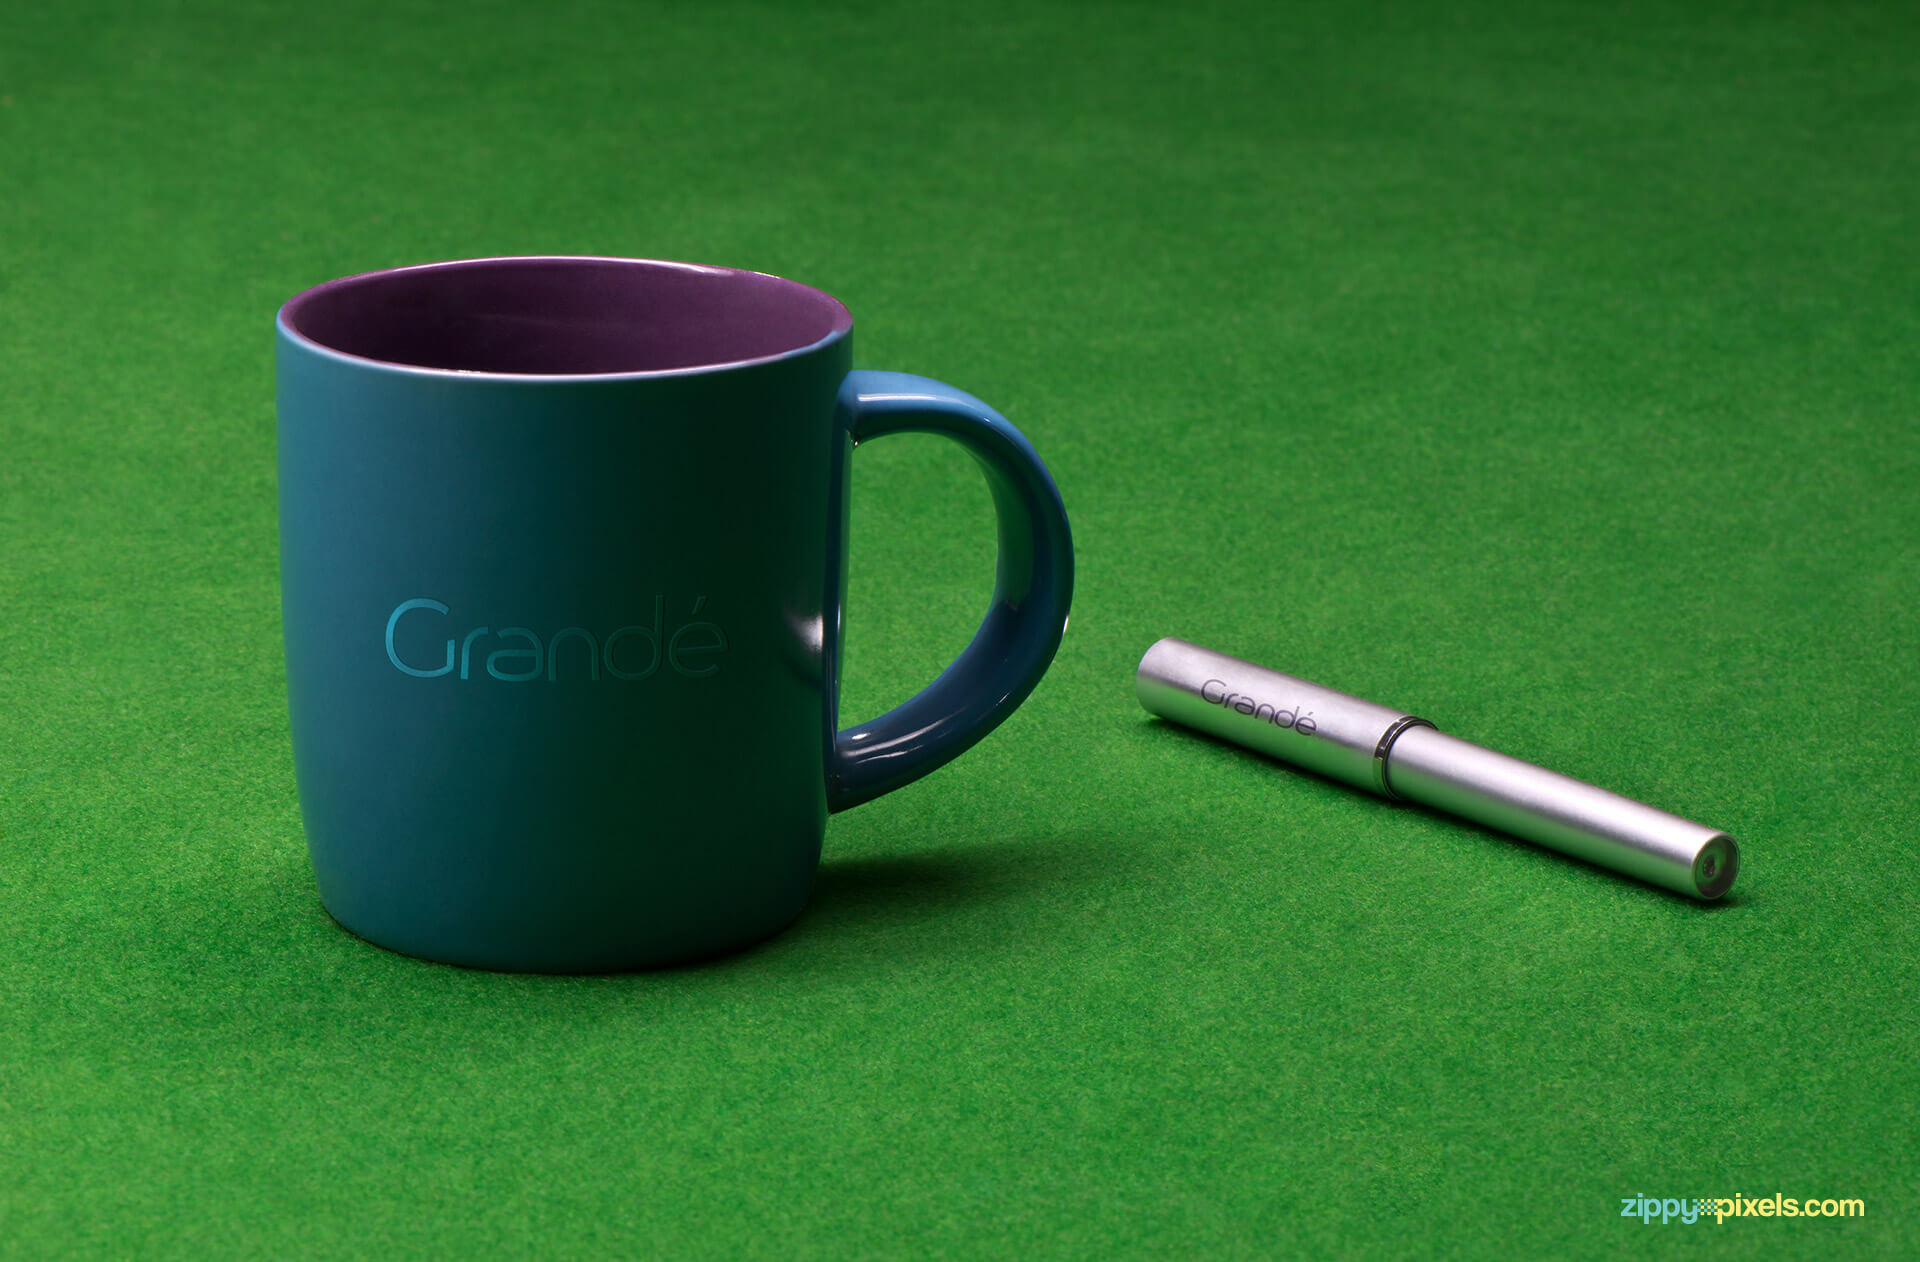 Corporate Branding Mockup of a Blue Mug with a Pen on Pool Table